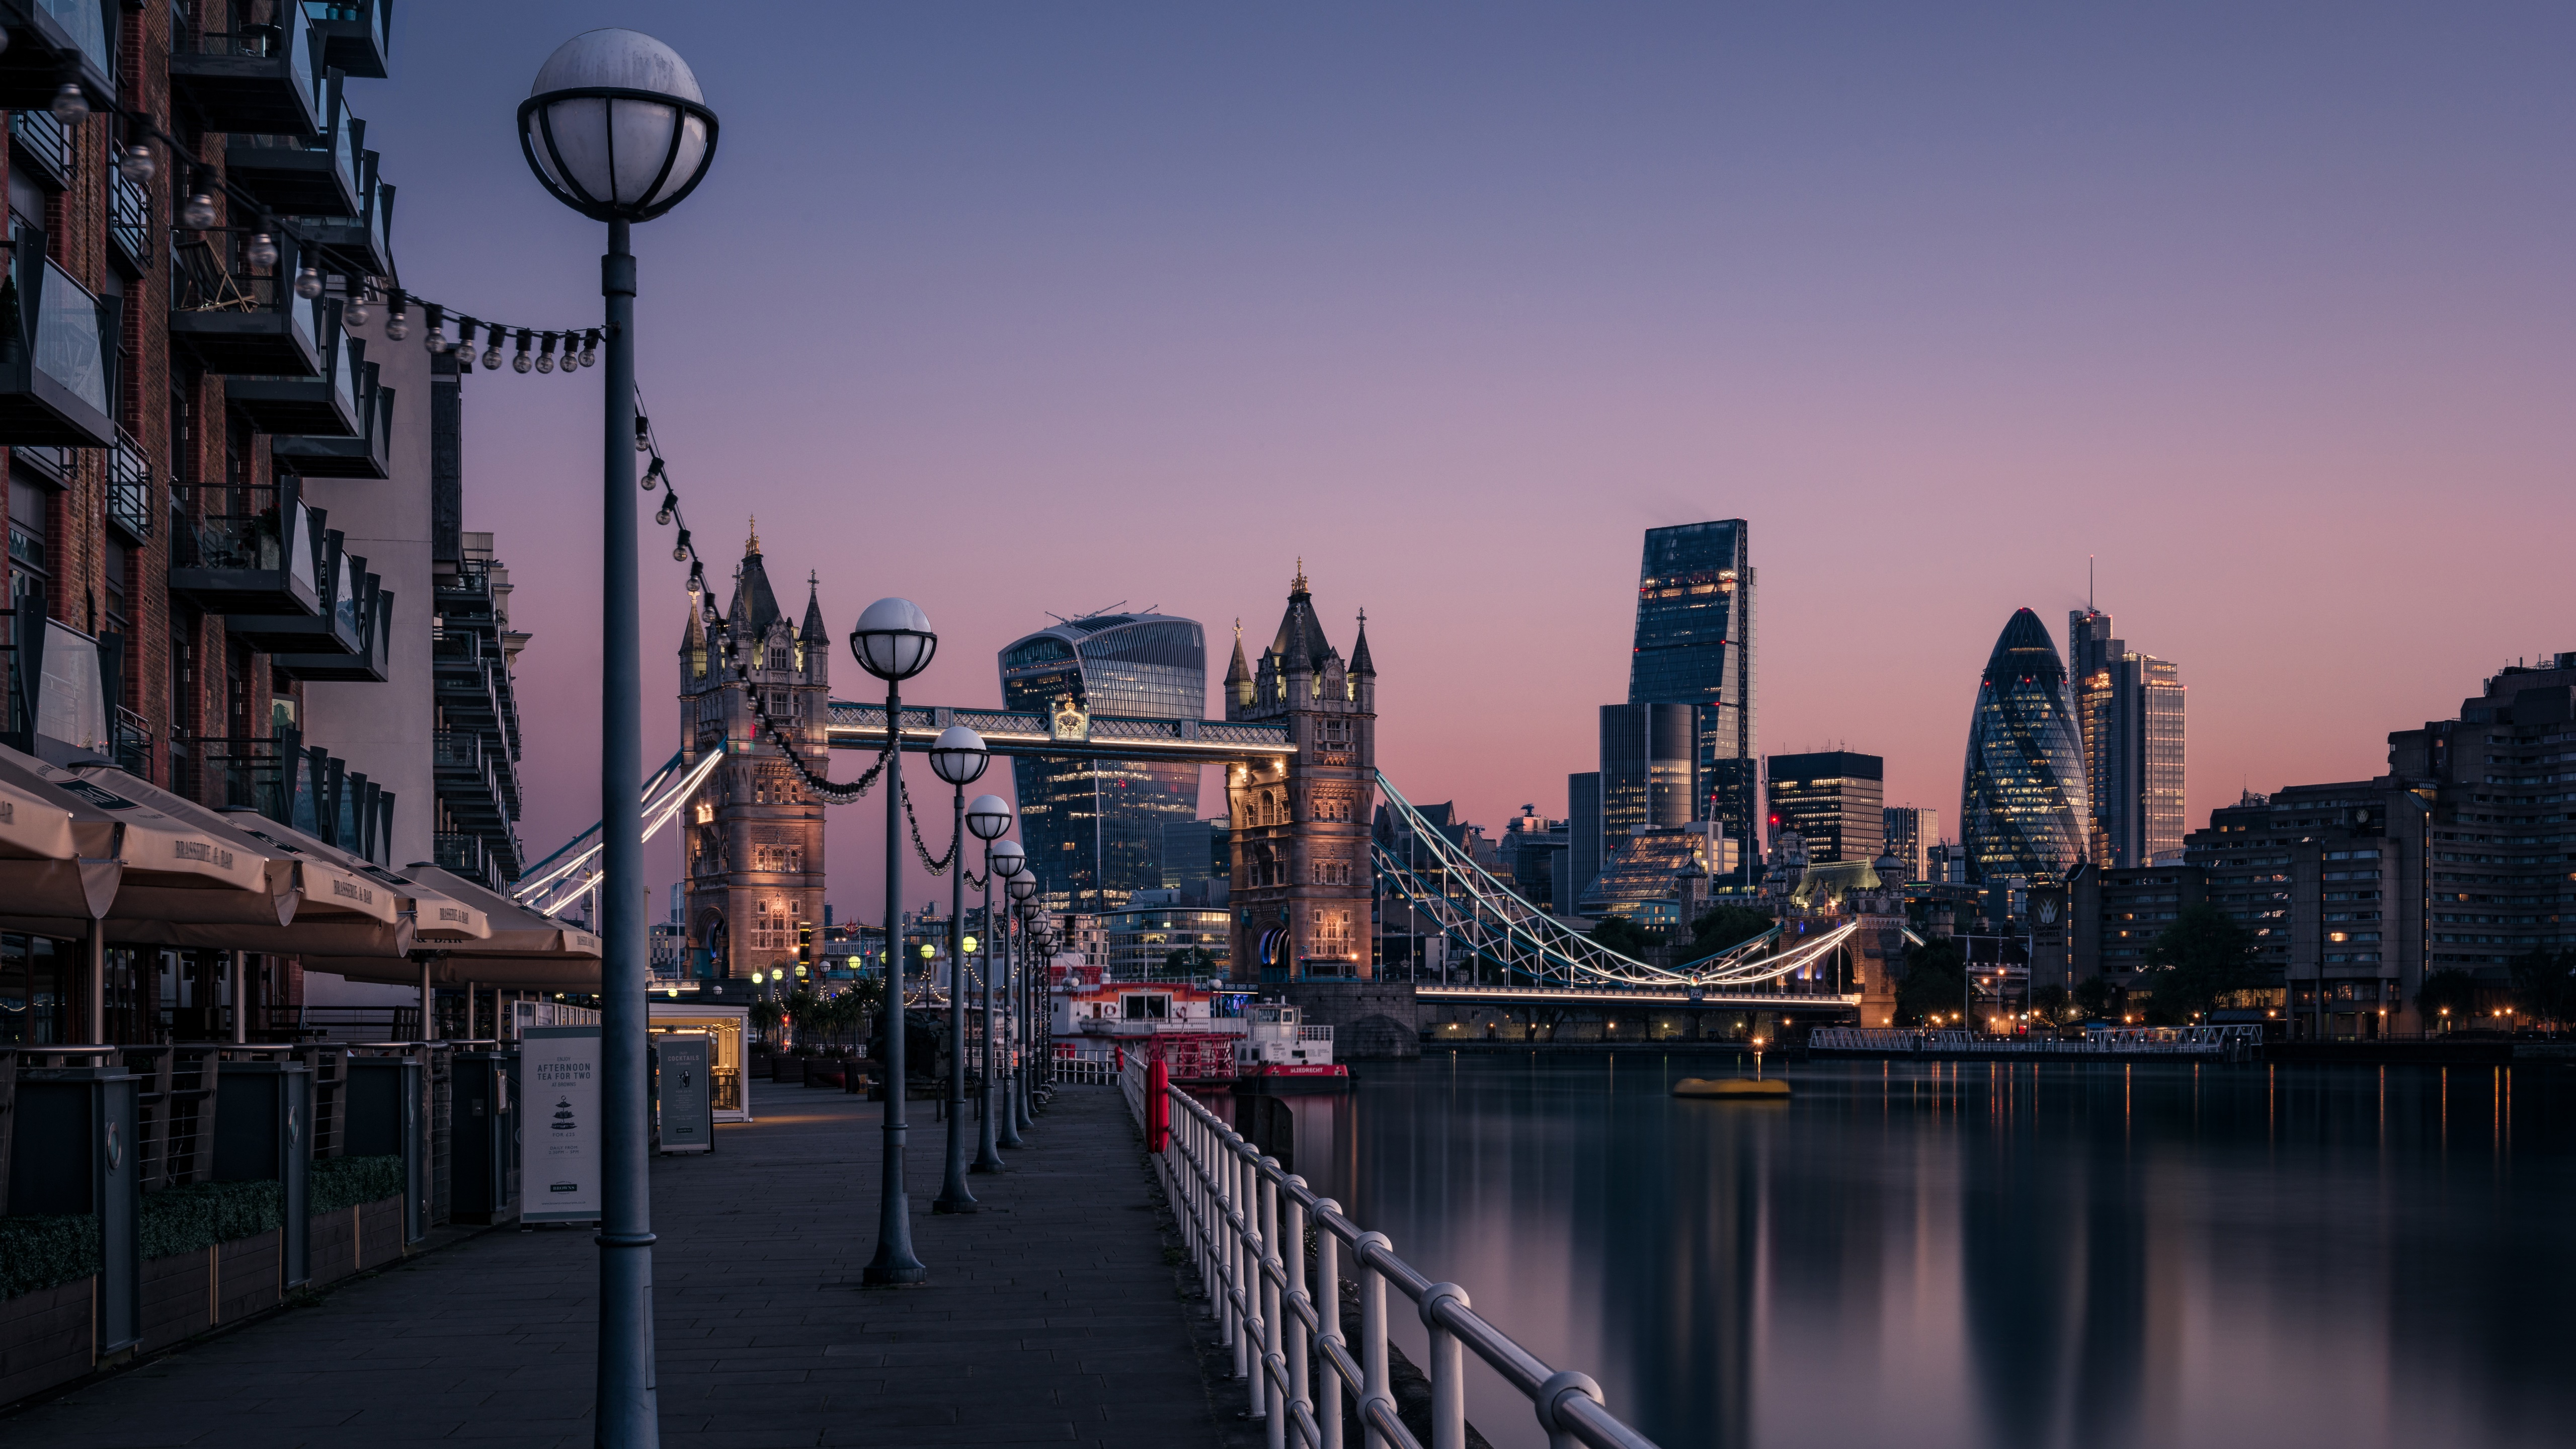 Riverside of the Thames (London, England) wallpaper